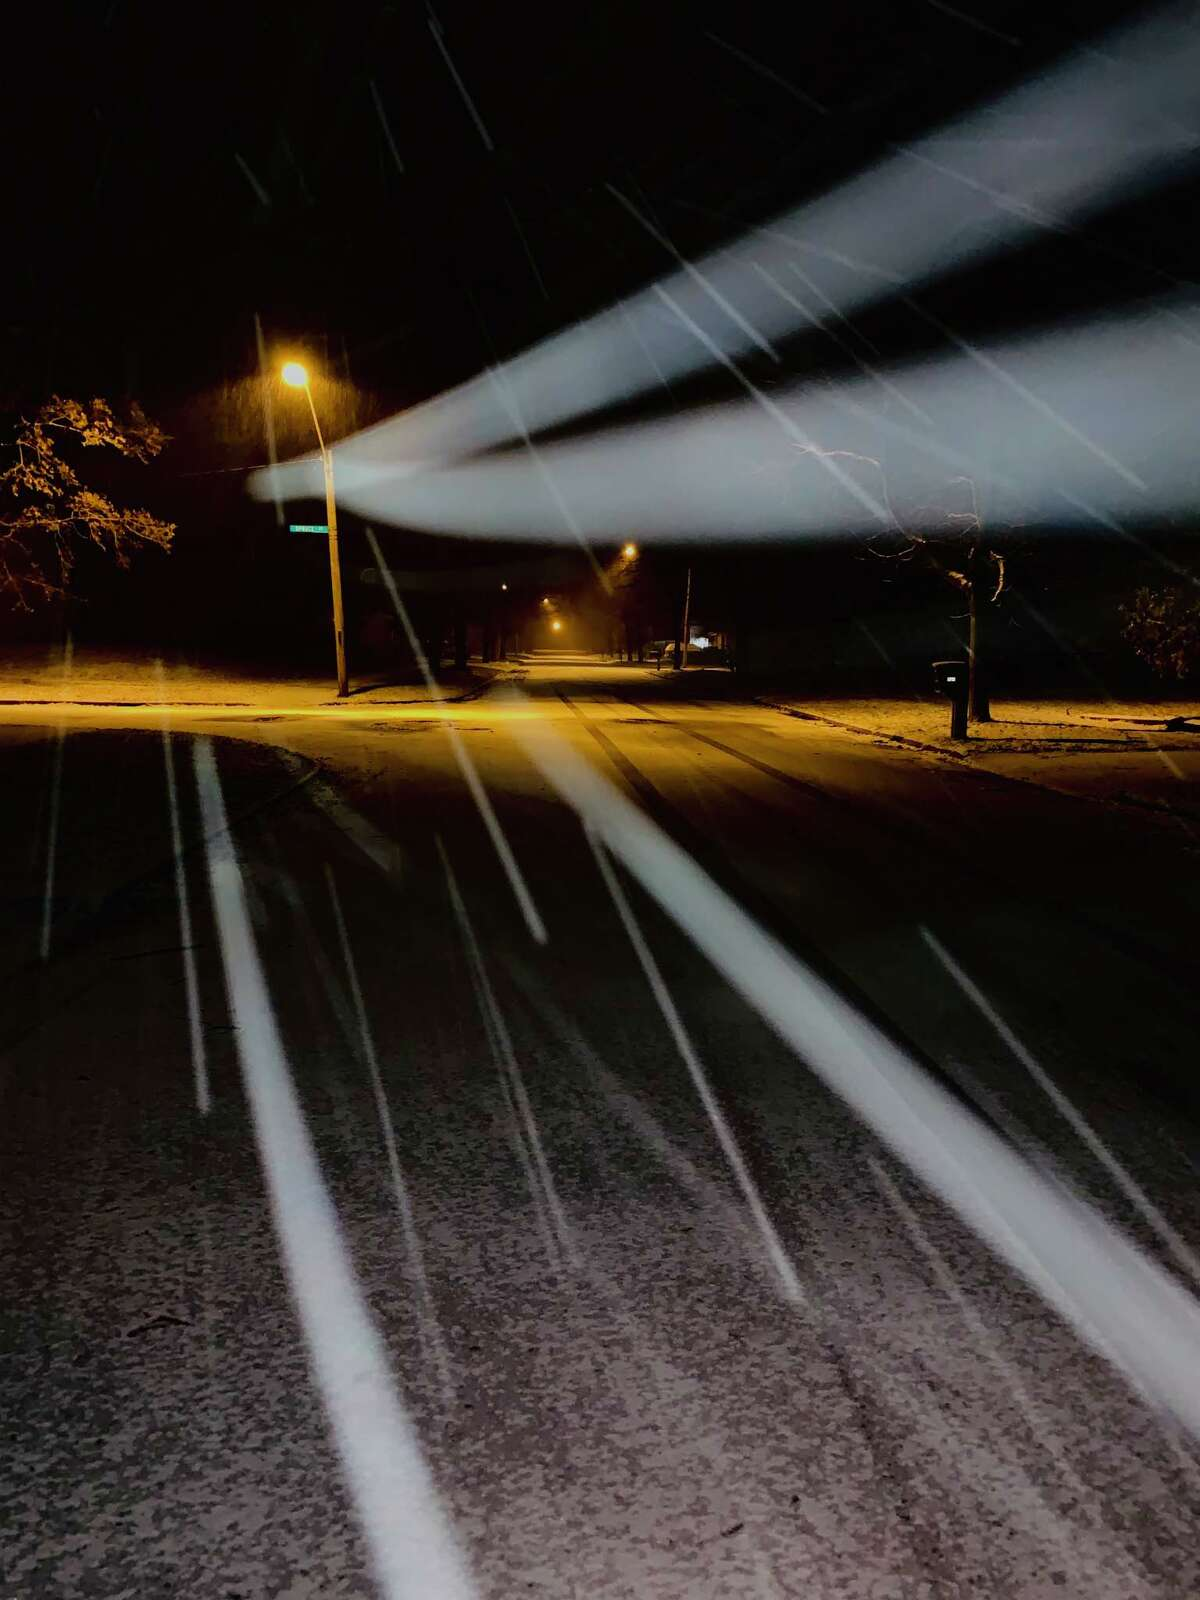 Images of Monday night's snowfall in Midland.